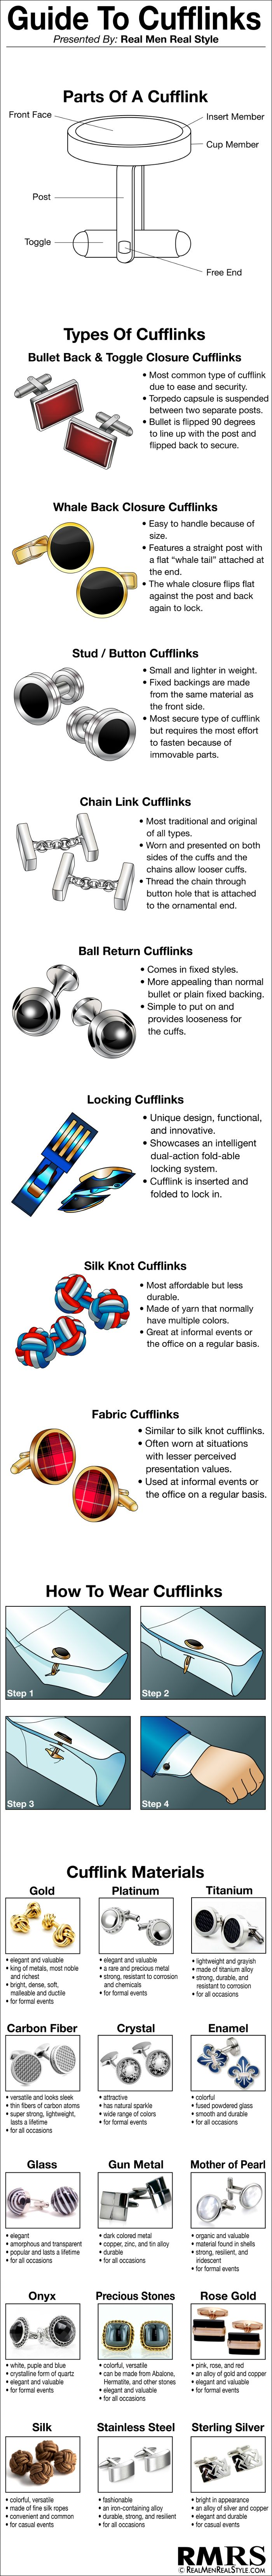 Ultimate Guide To Cufflinks Infographic #cufflink #menstyle